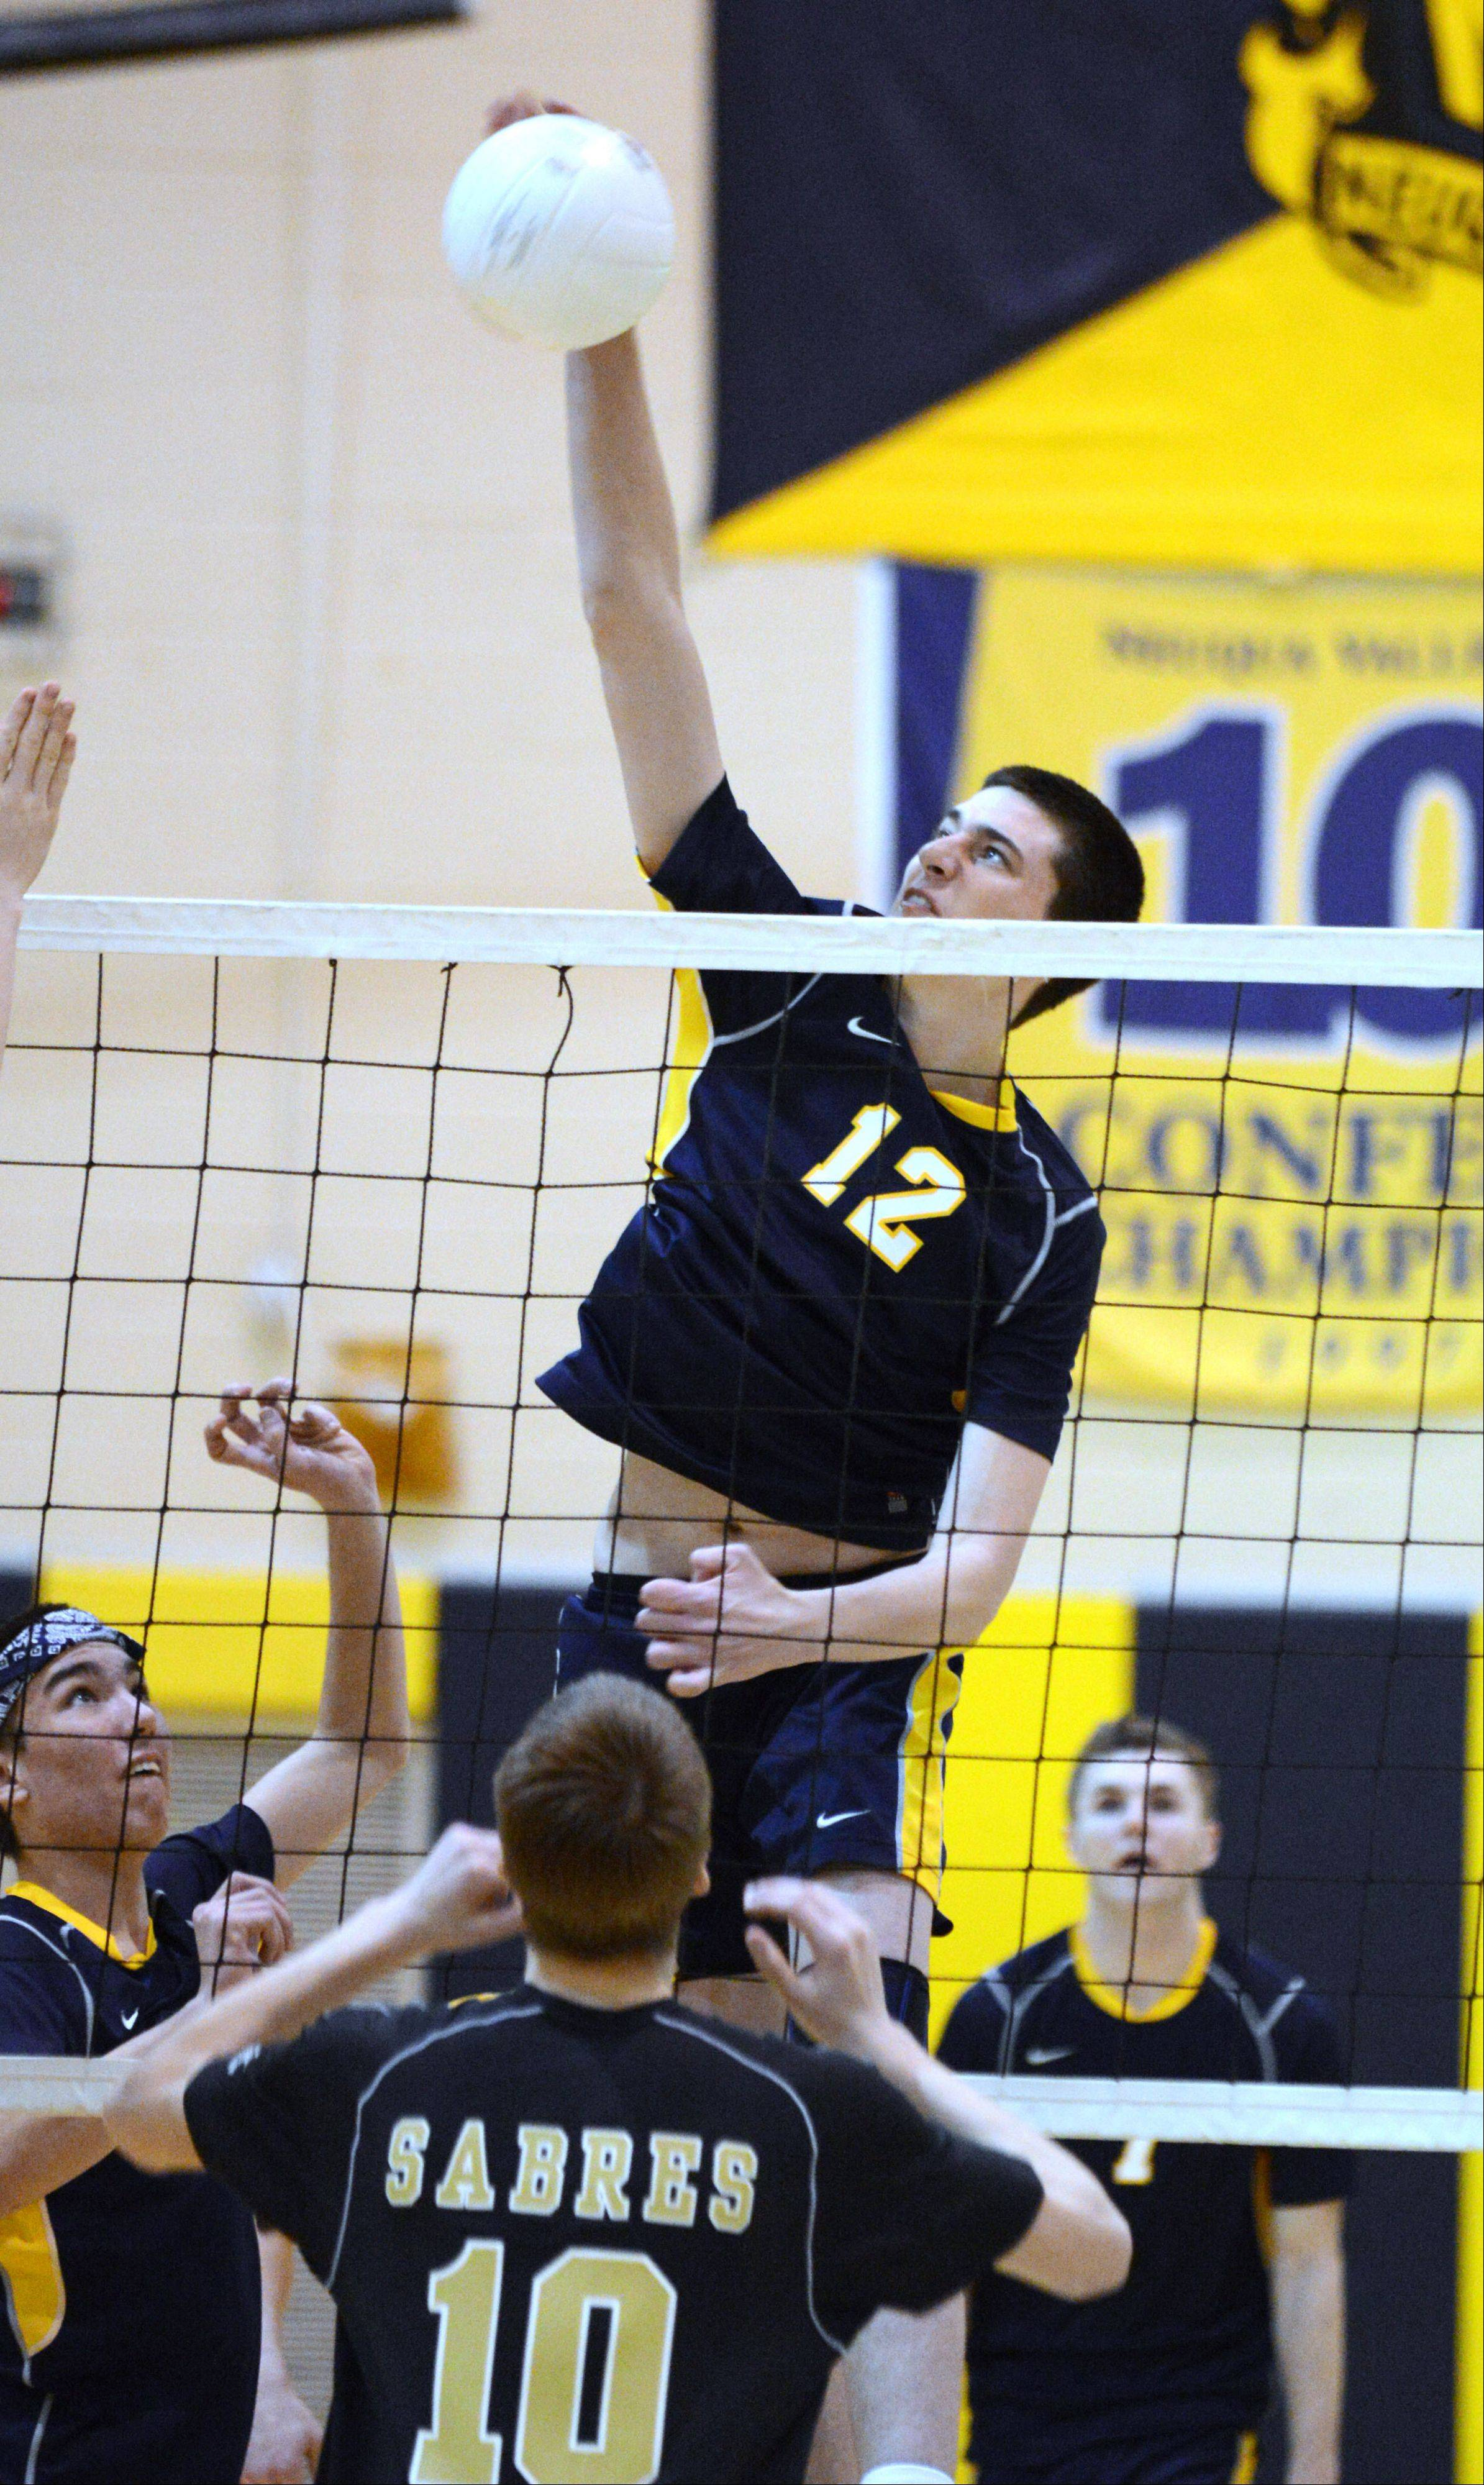 Griffin Shields of Neuqua Valley goes up for a hit during the Streamwood at Neuqua Valley boys volleyball game Tuesday.